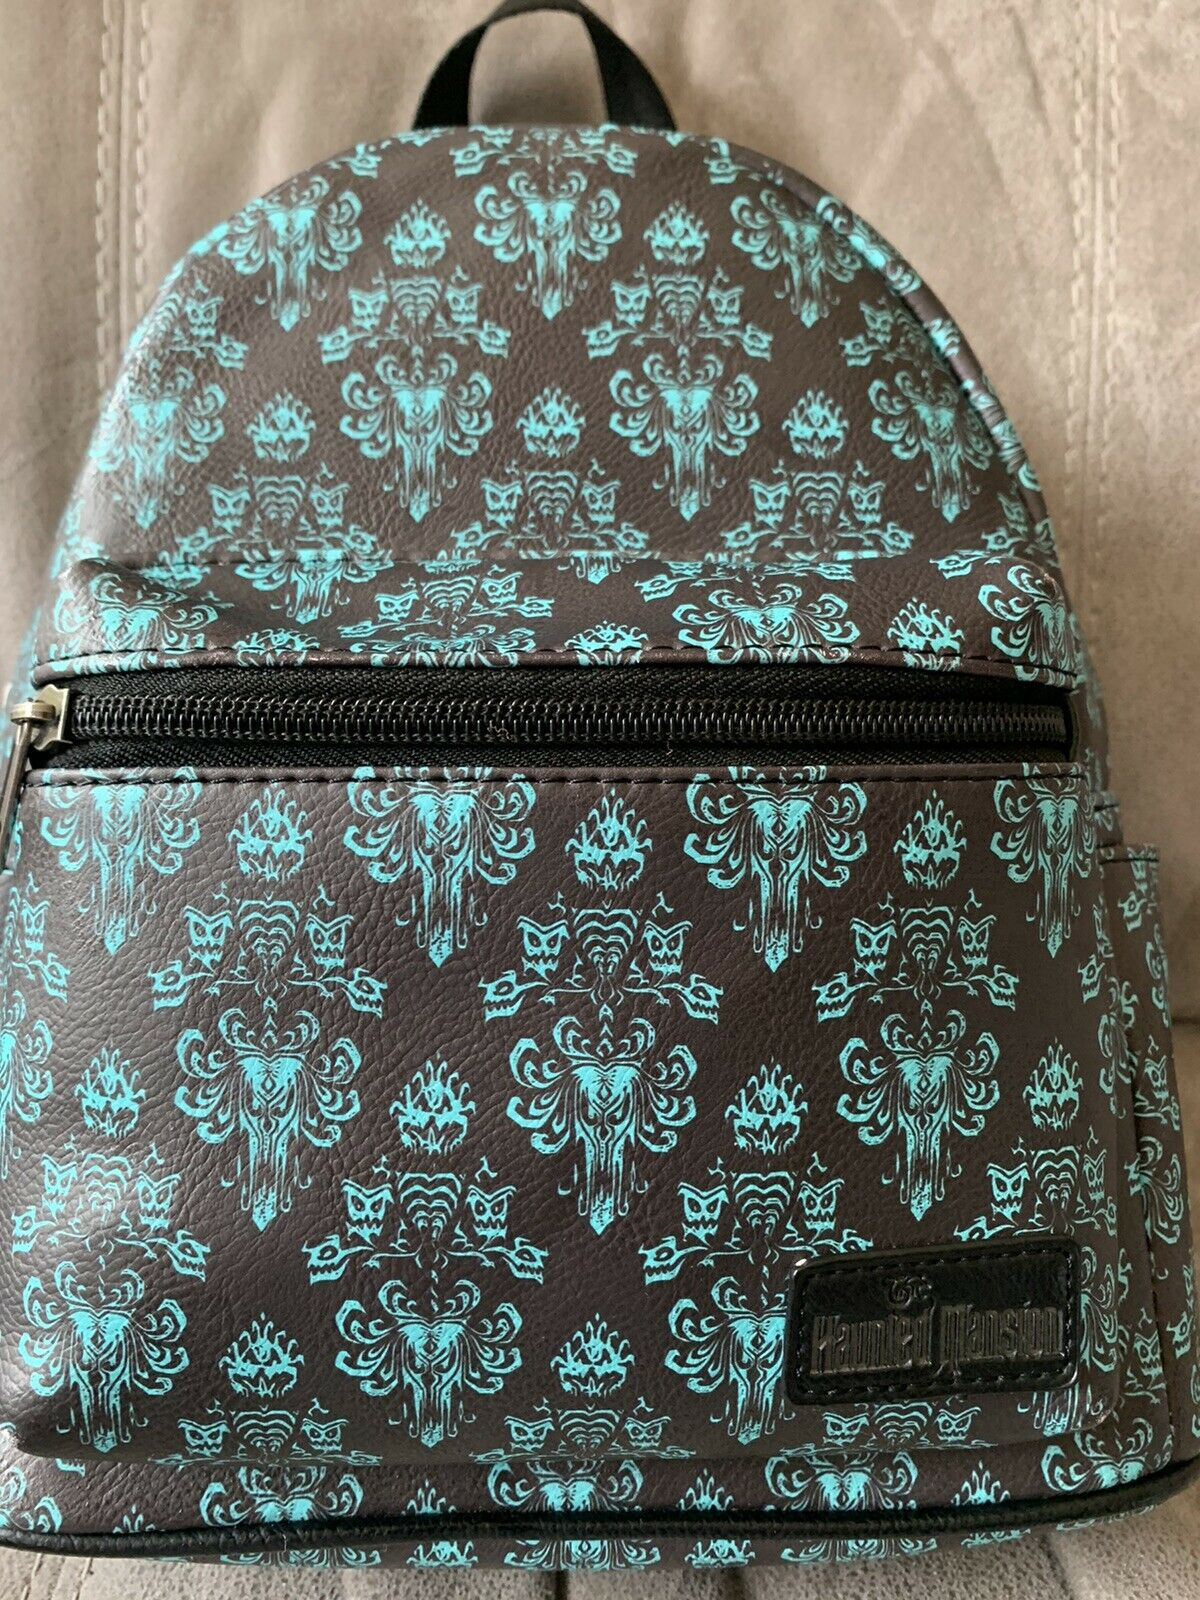 Target 50th Anniversary Haunted Mansion Mini Backpack - NWOT FREE SHIPPING